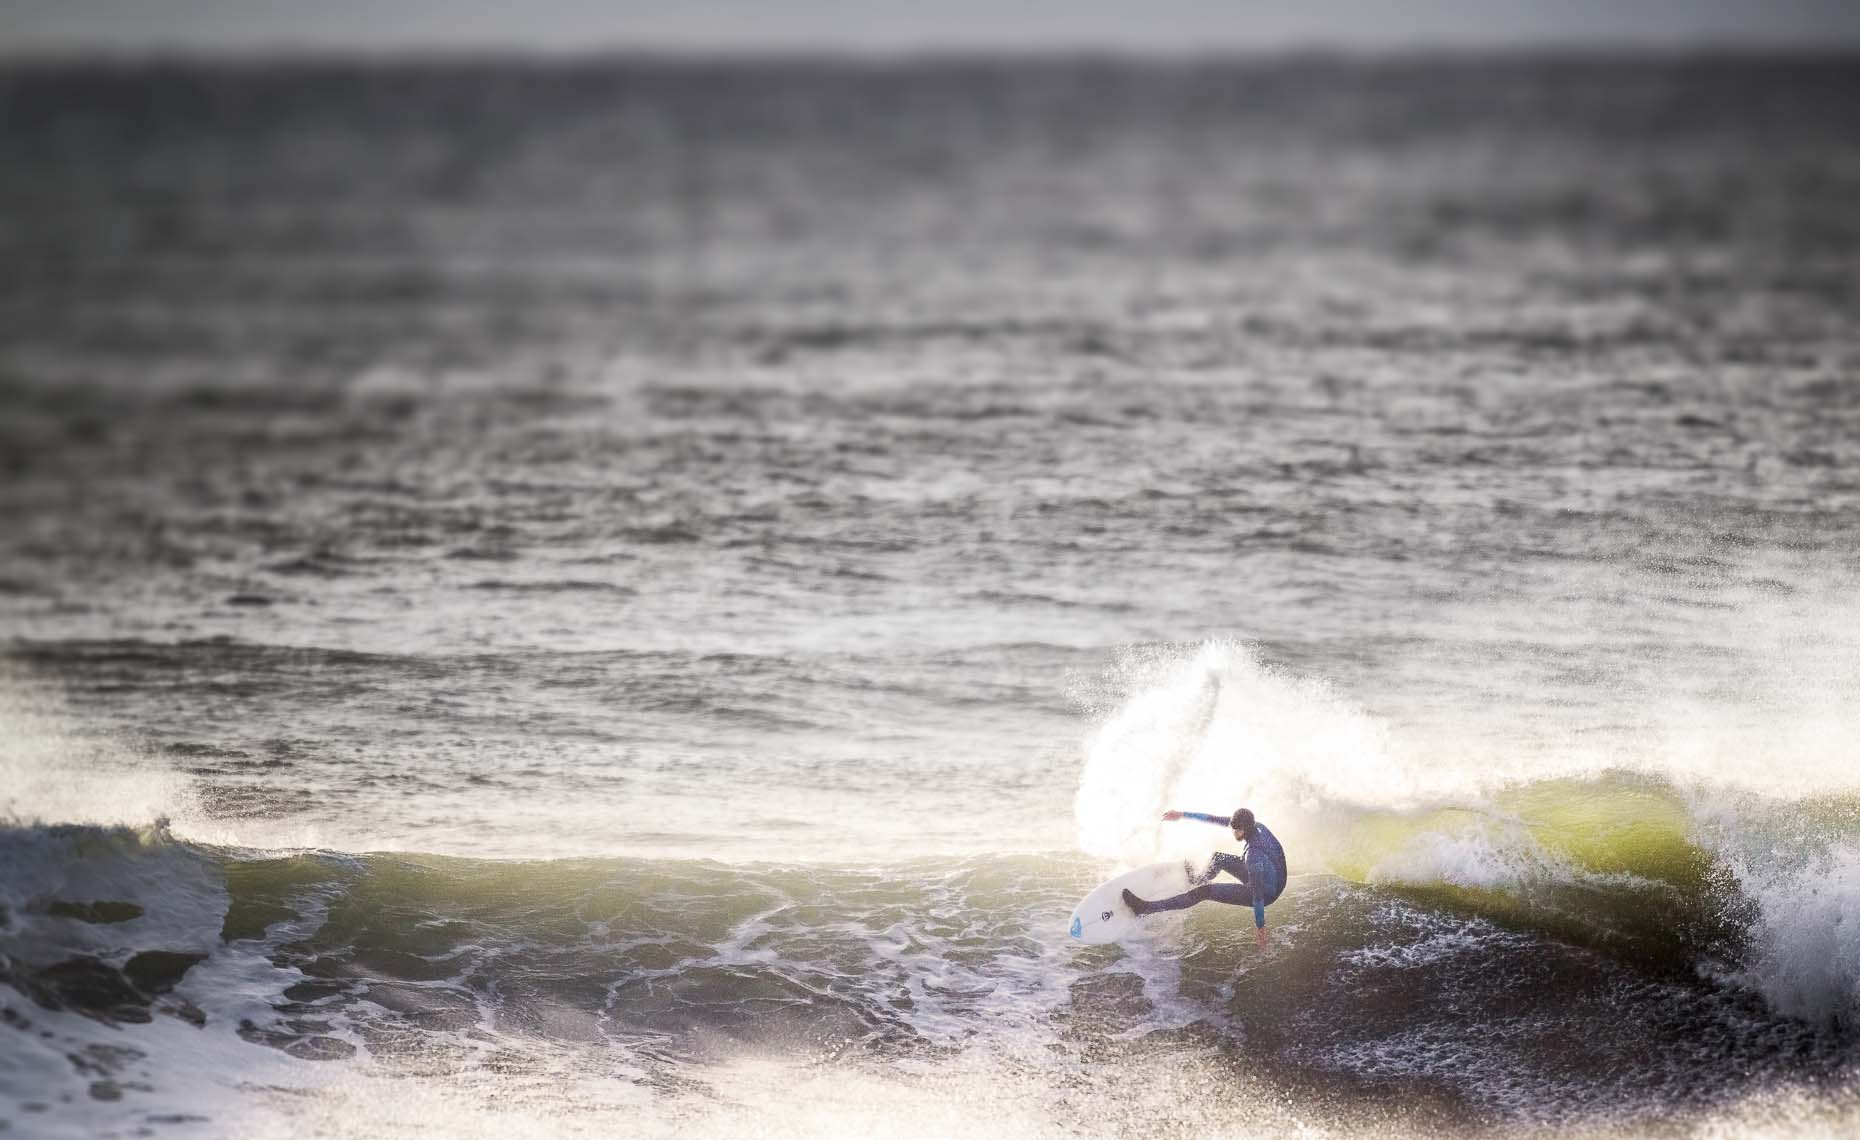 Female surf action documented by photographer in tofino BC.